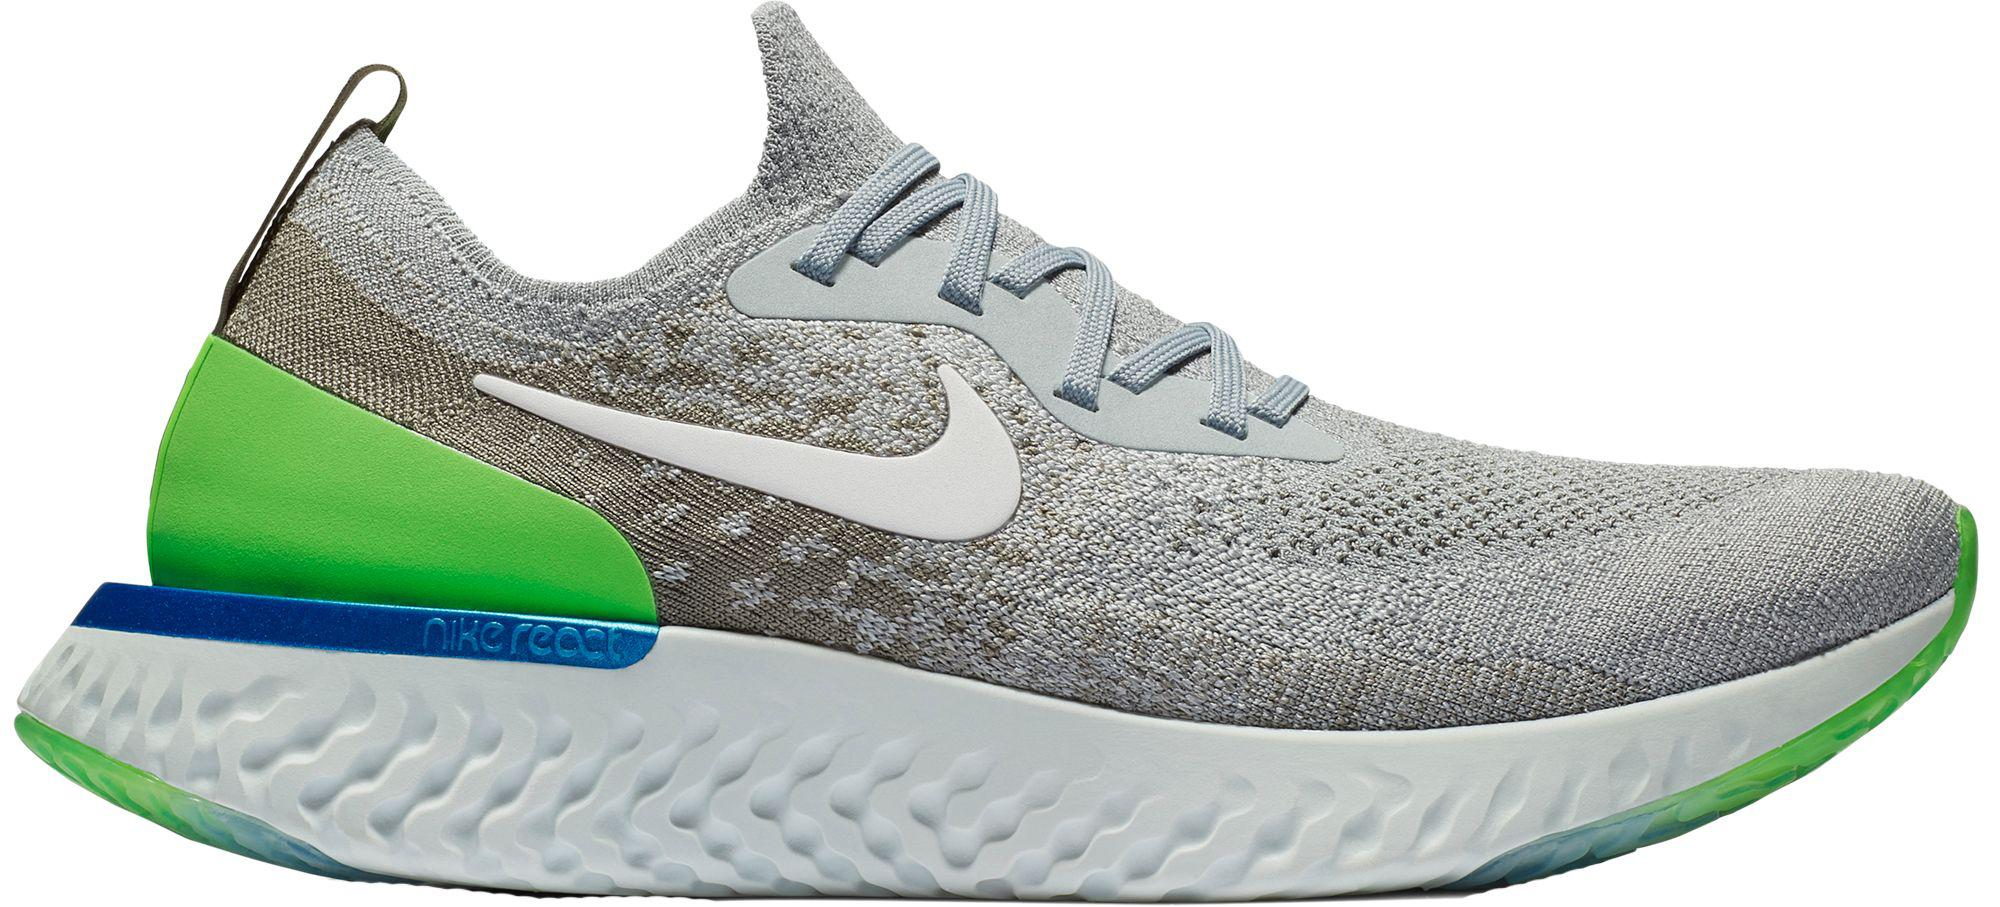 d694c43f9039 Lyst - Nike Epic React Flyknit Running Shoes in Gray for Men